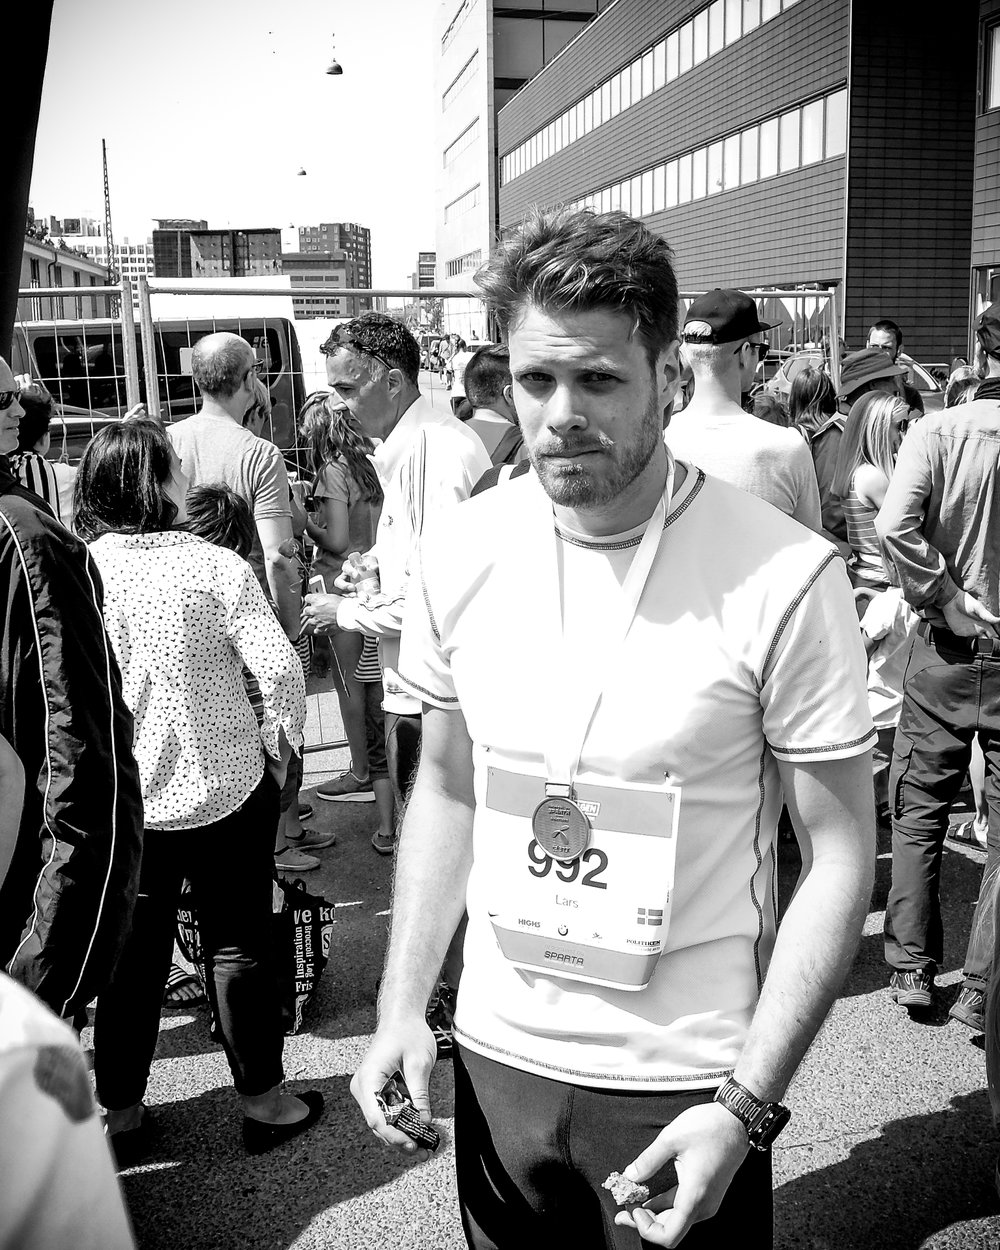 That awful day in Copenhagen Marathon when I started having thigh pains after only 18k.